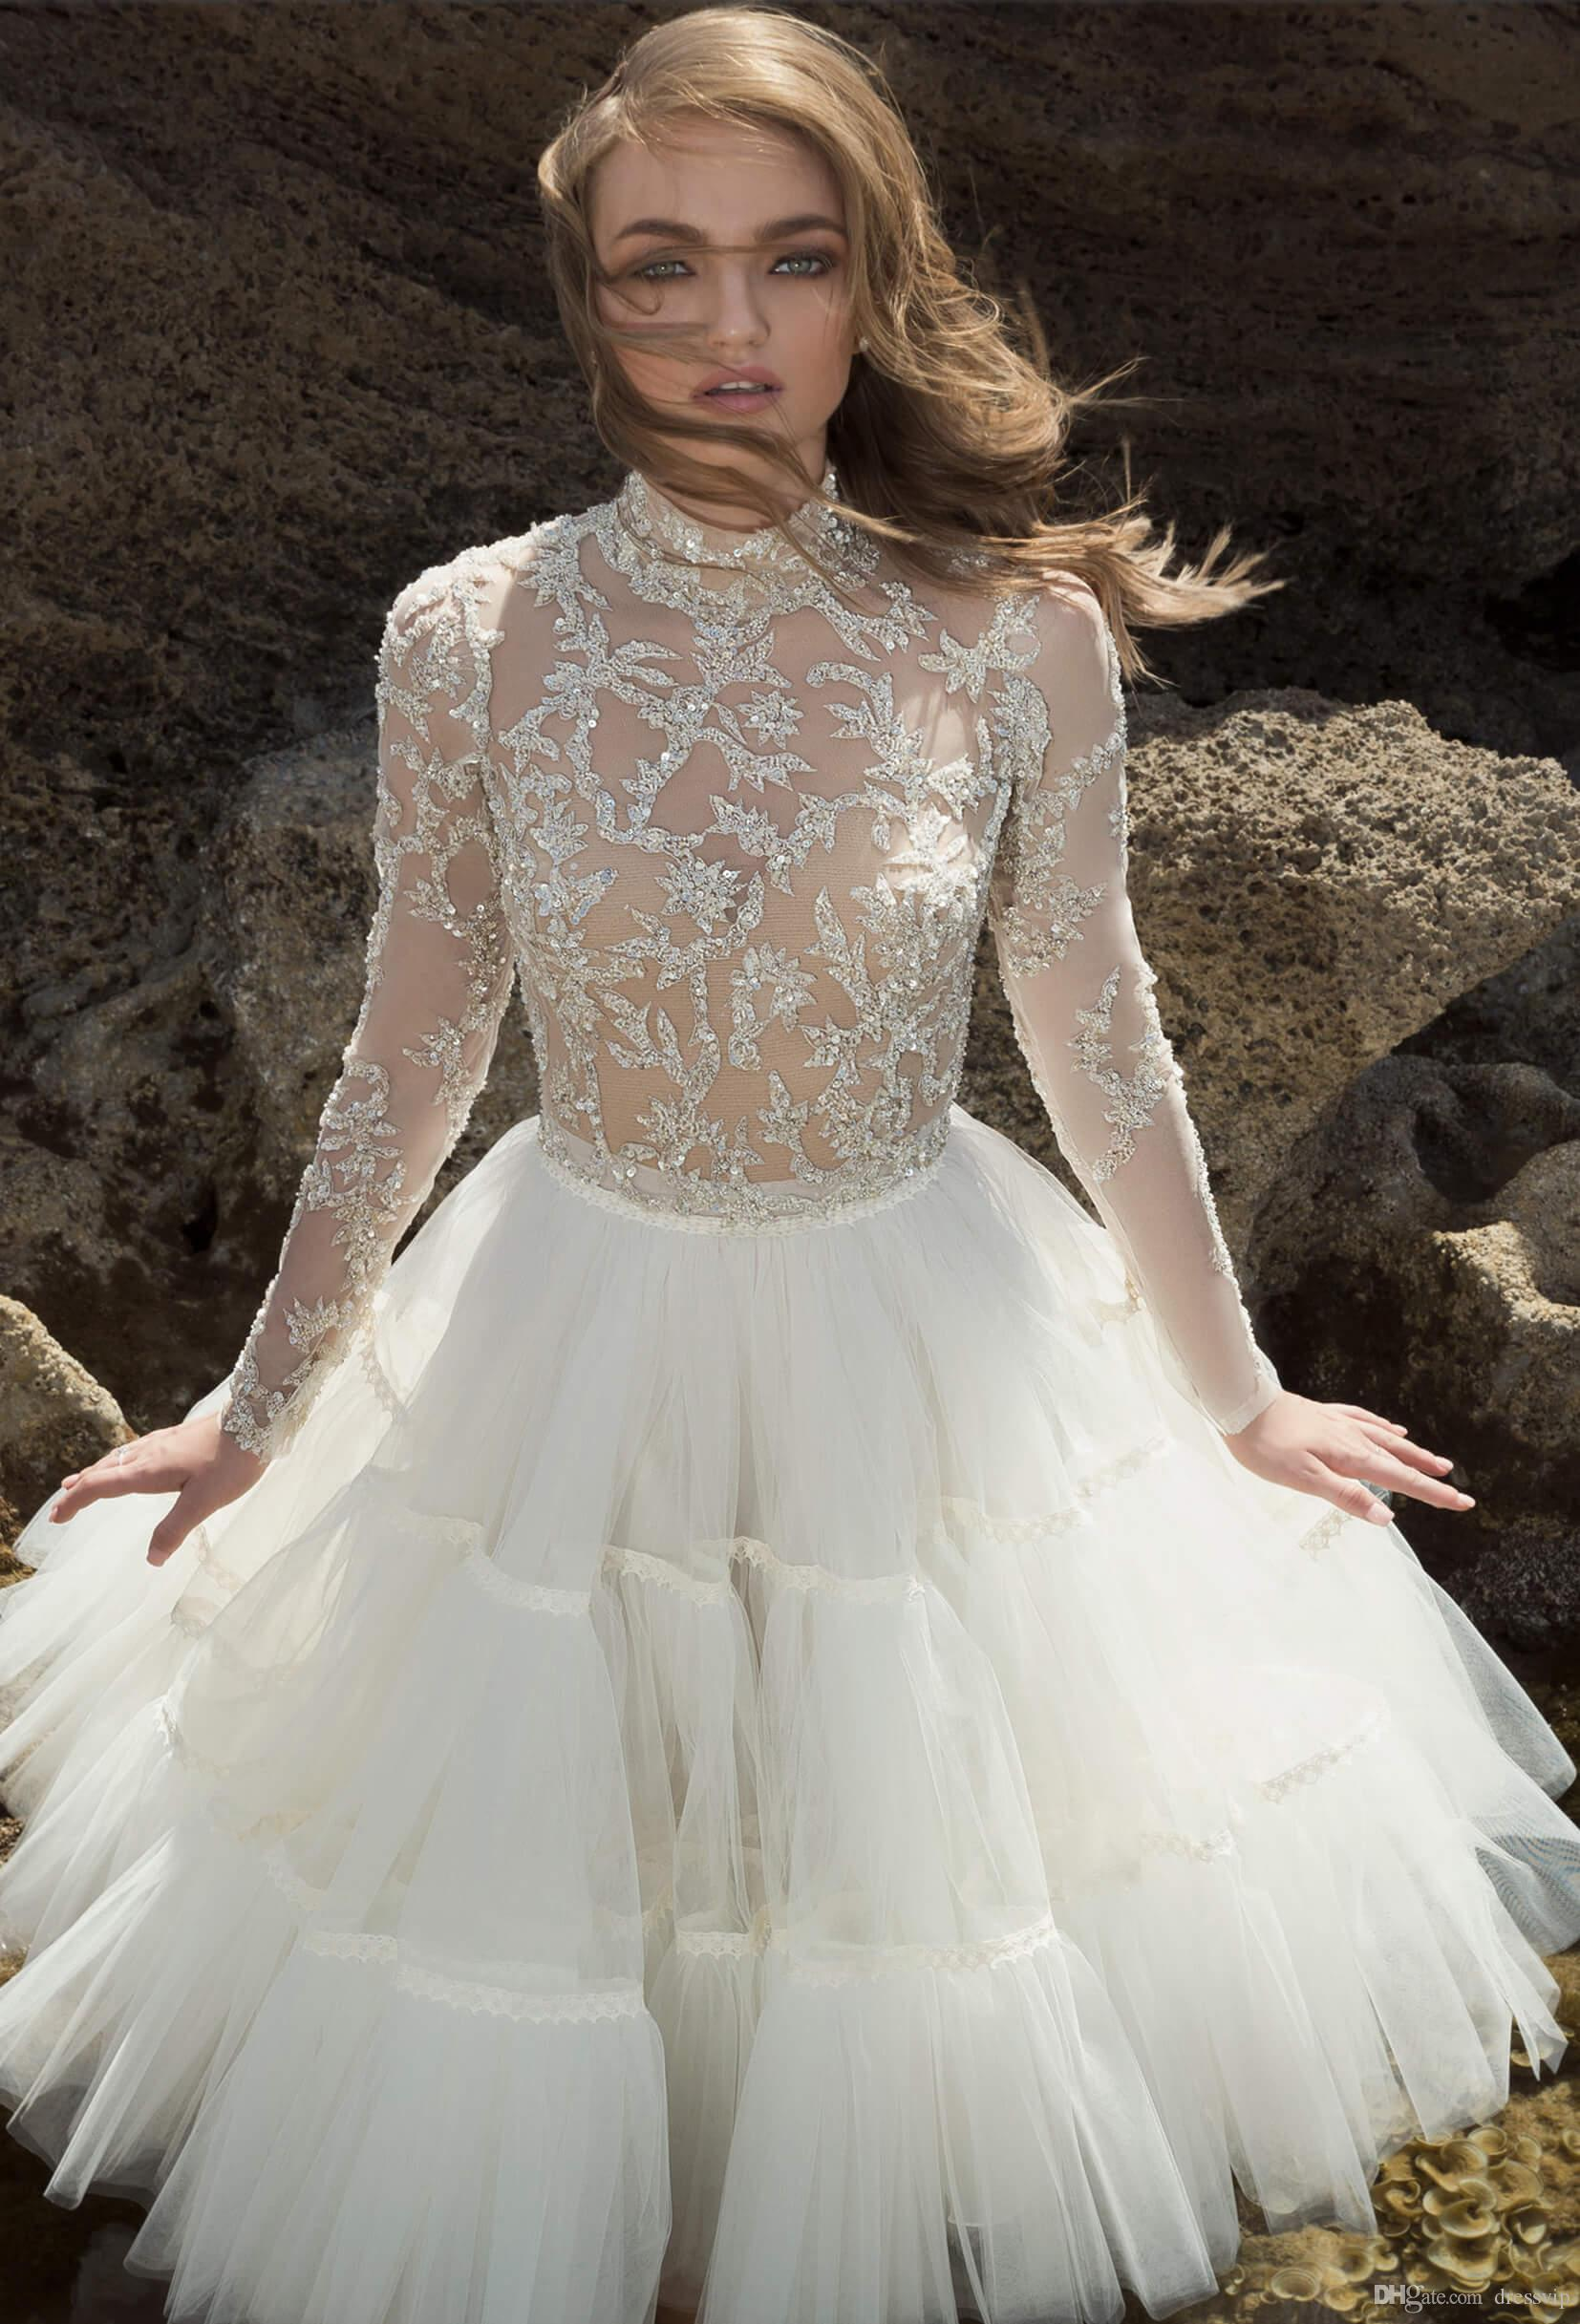 2018 Dany Mizrachi Short Wedding Dresses High Neck Lace Tulle Applique Sequins Illusion Beach Wedding Gowns Sexy Long Sleeve Bridal Dress